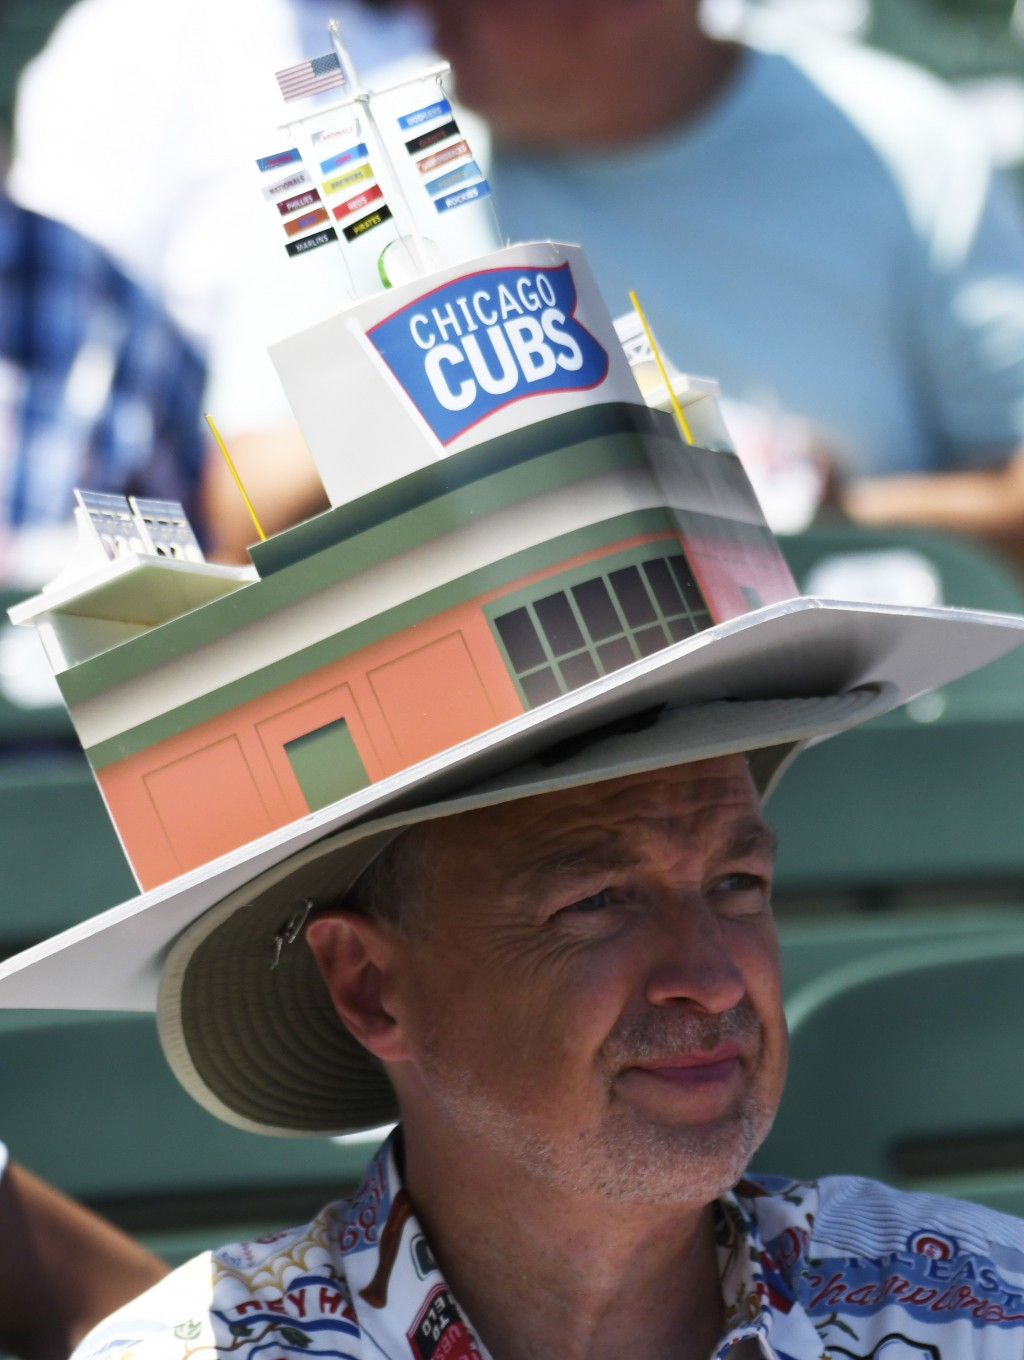 Kent Weakly sits in the stands before a baseball game between the Chicago Cubs and the Milwaukee Brewers, Saturday, Aug. 3, 2019, in Chicago. (AP Phot